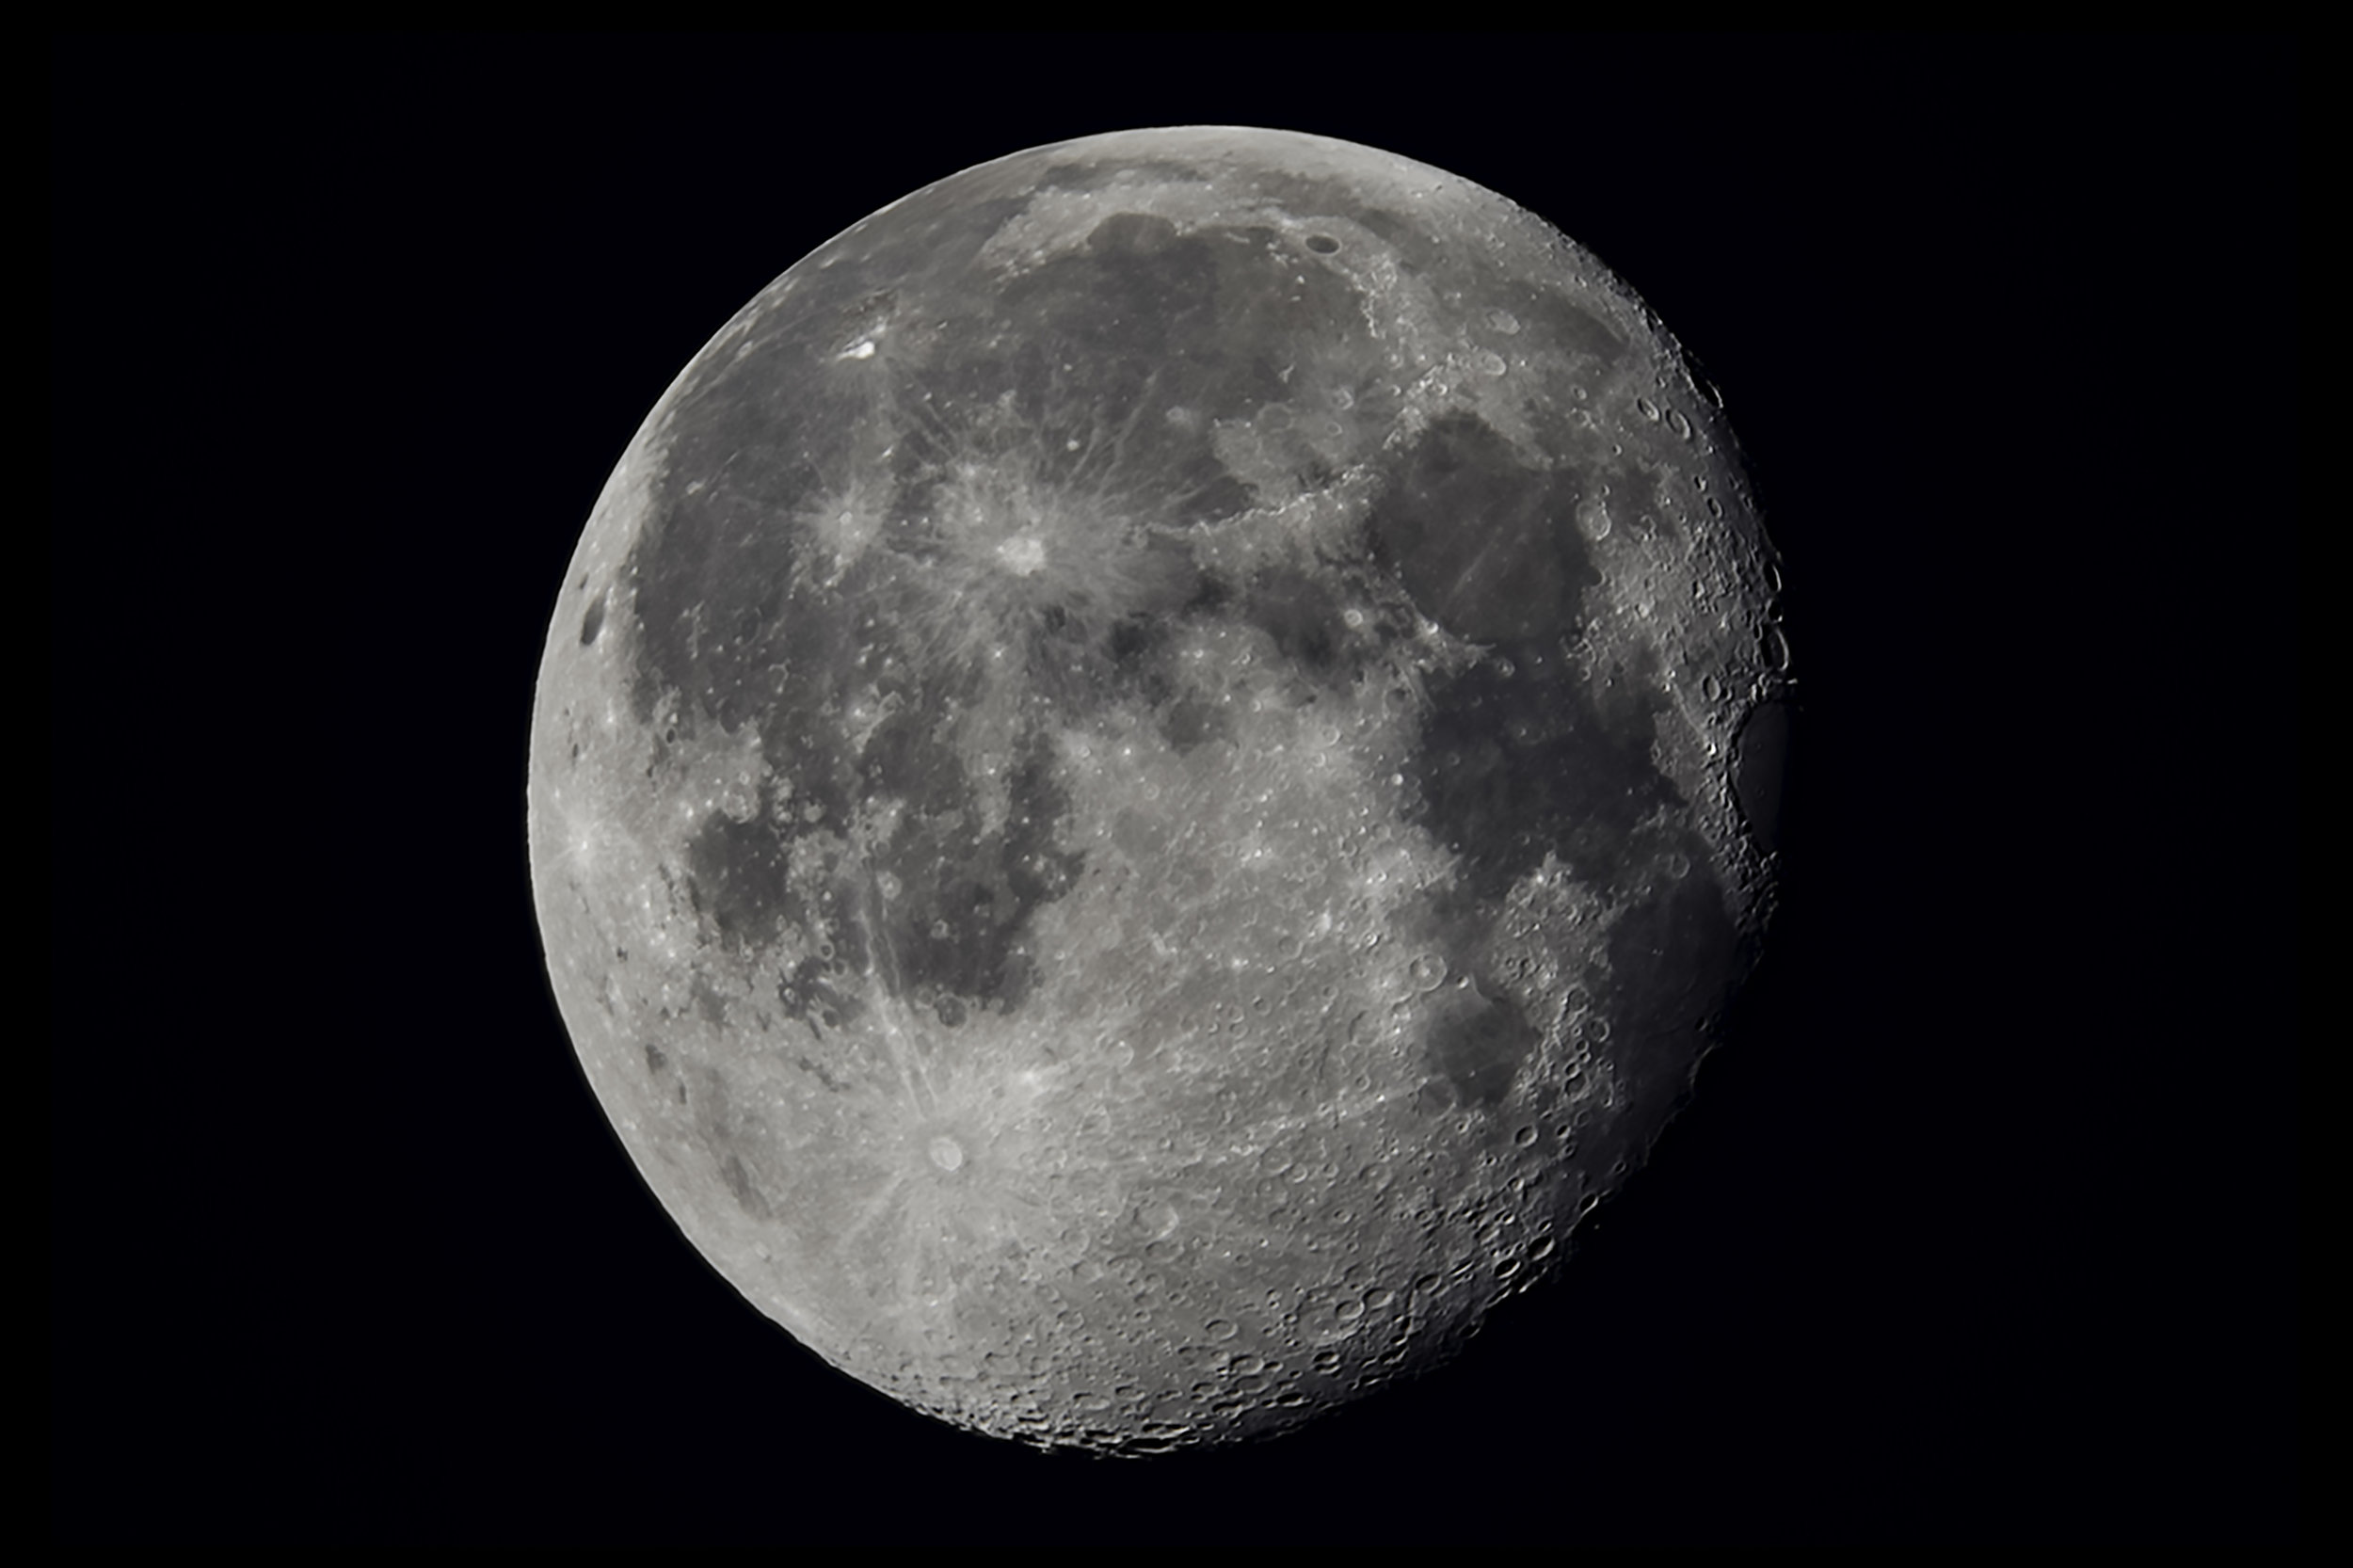 Moon - 40 image stack in RegiStax